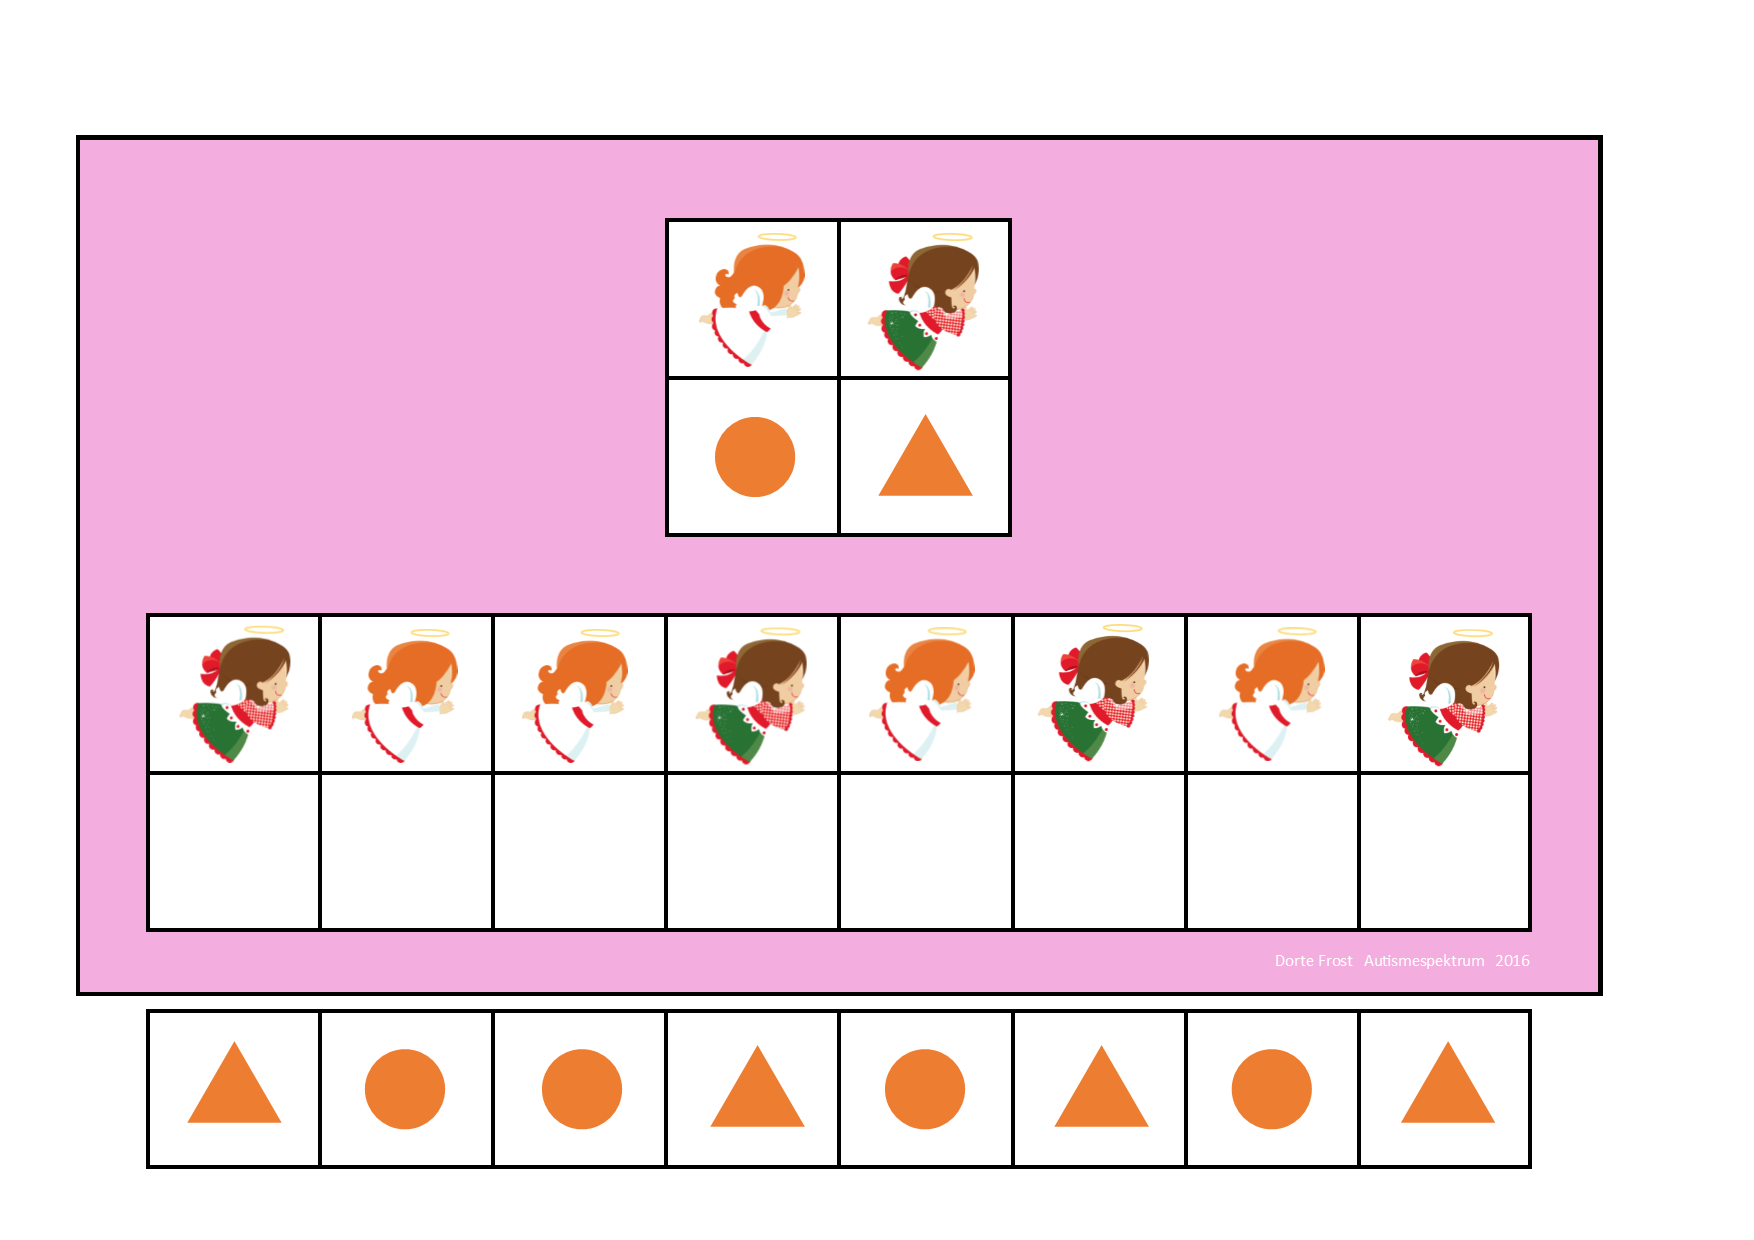 Board And Tiles For The Angel Visual Perception Game By